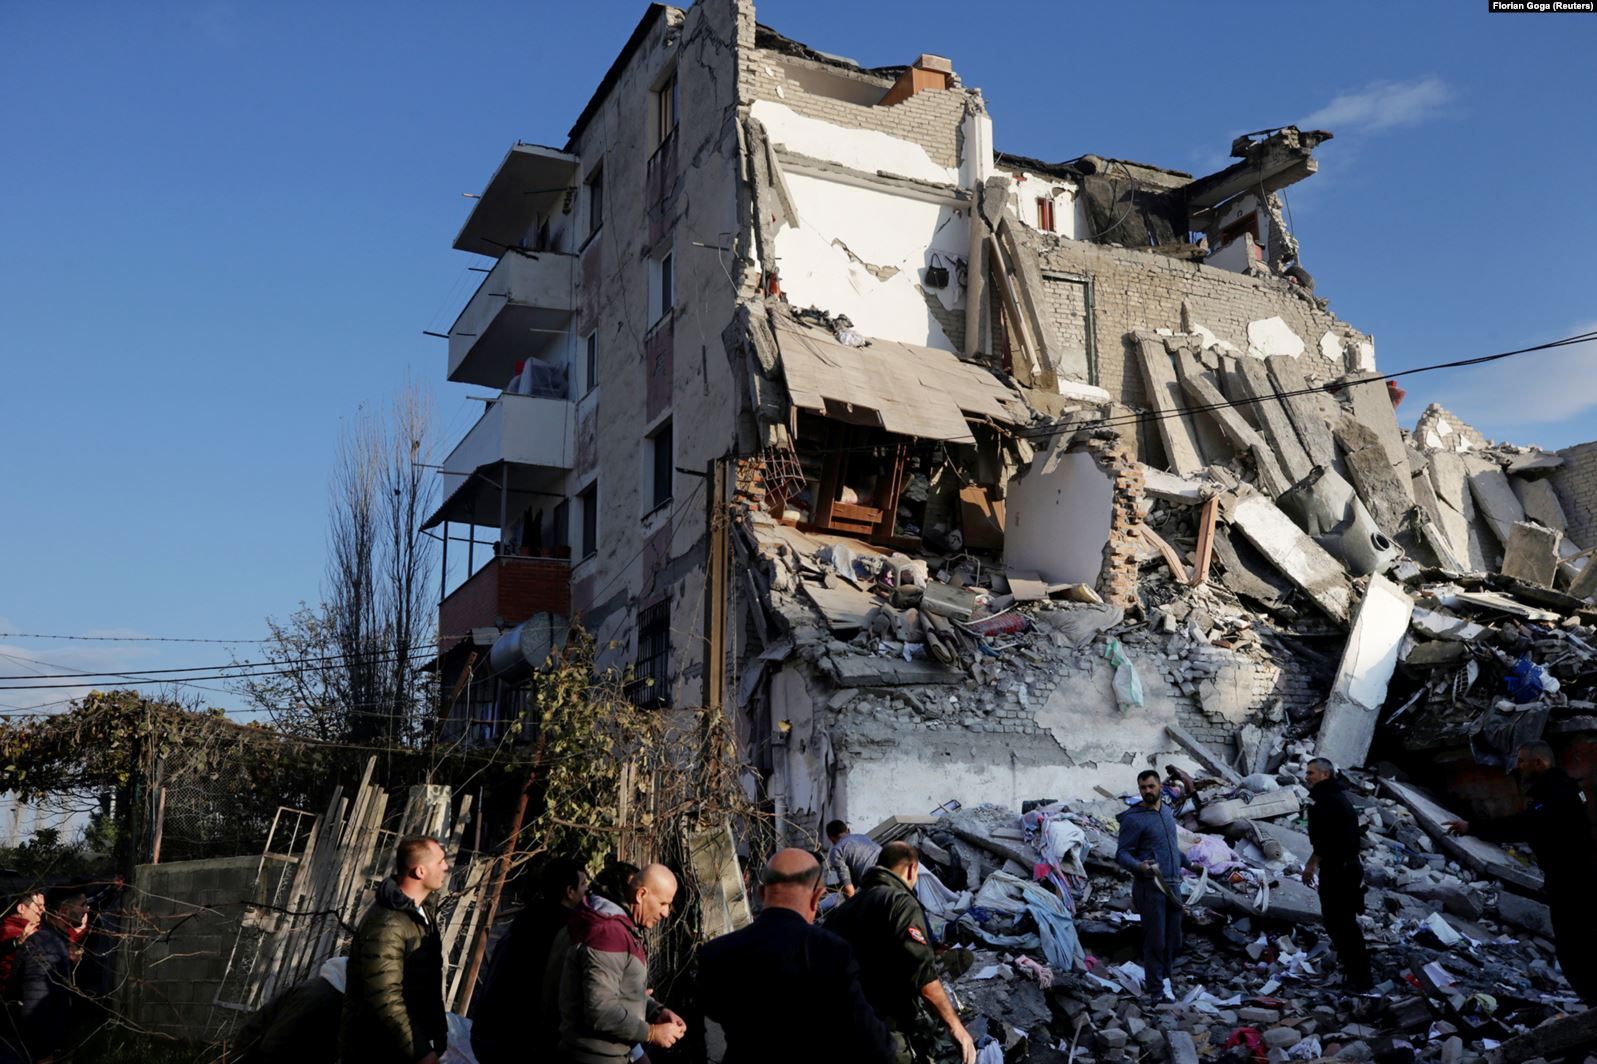 21 People Dead in Albania, As Earthquake Casualties Continue to Increase